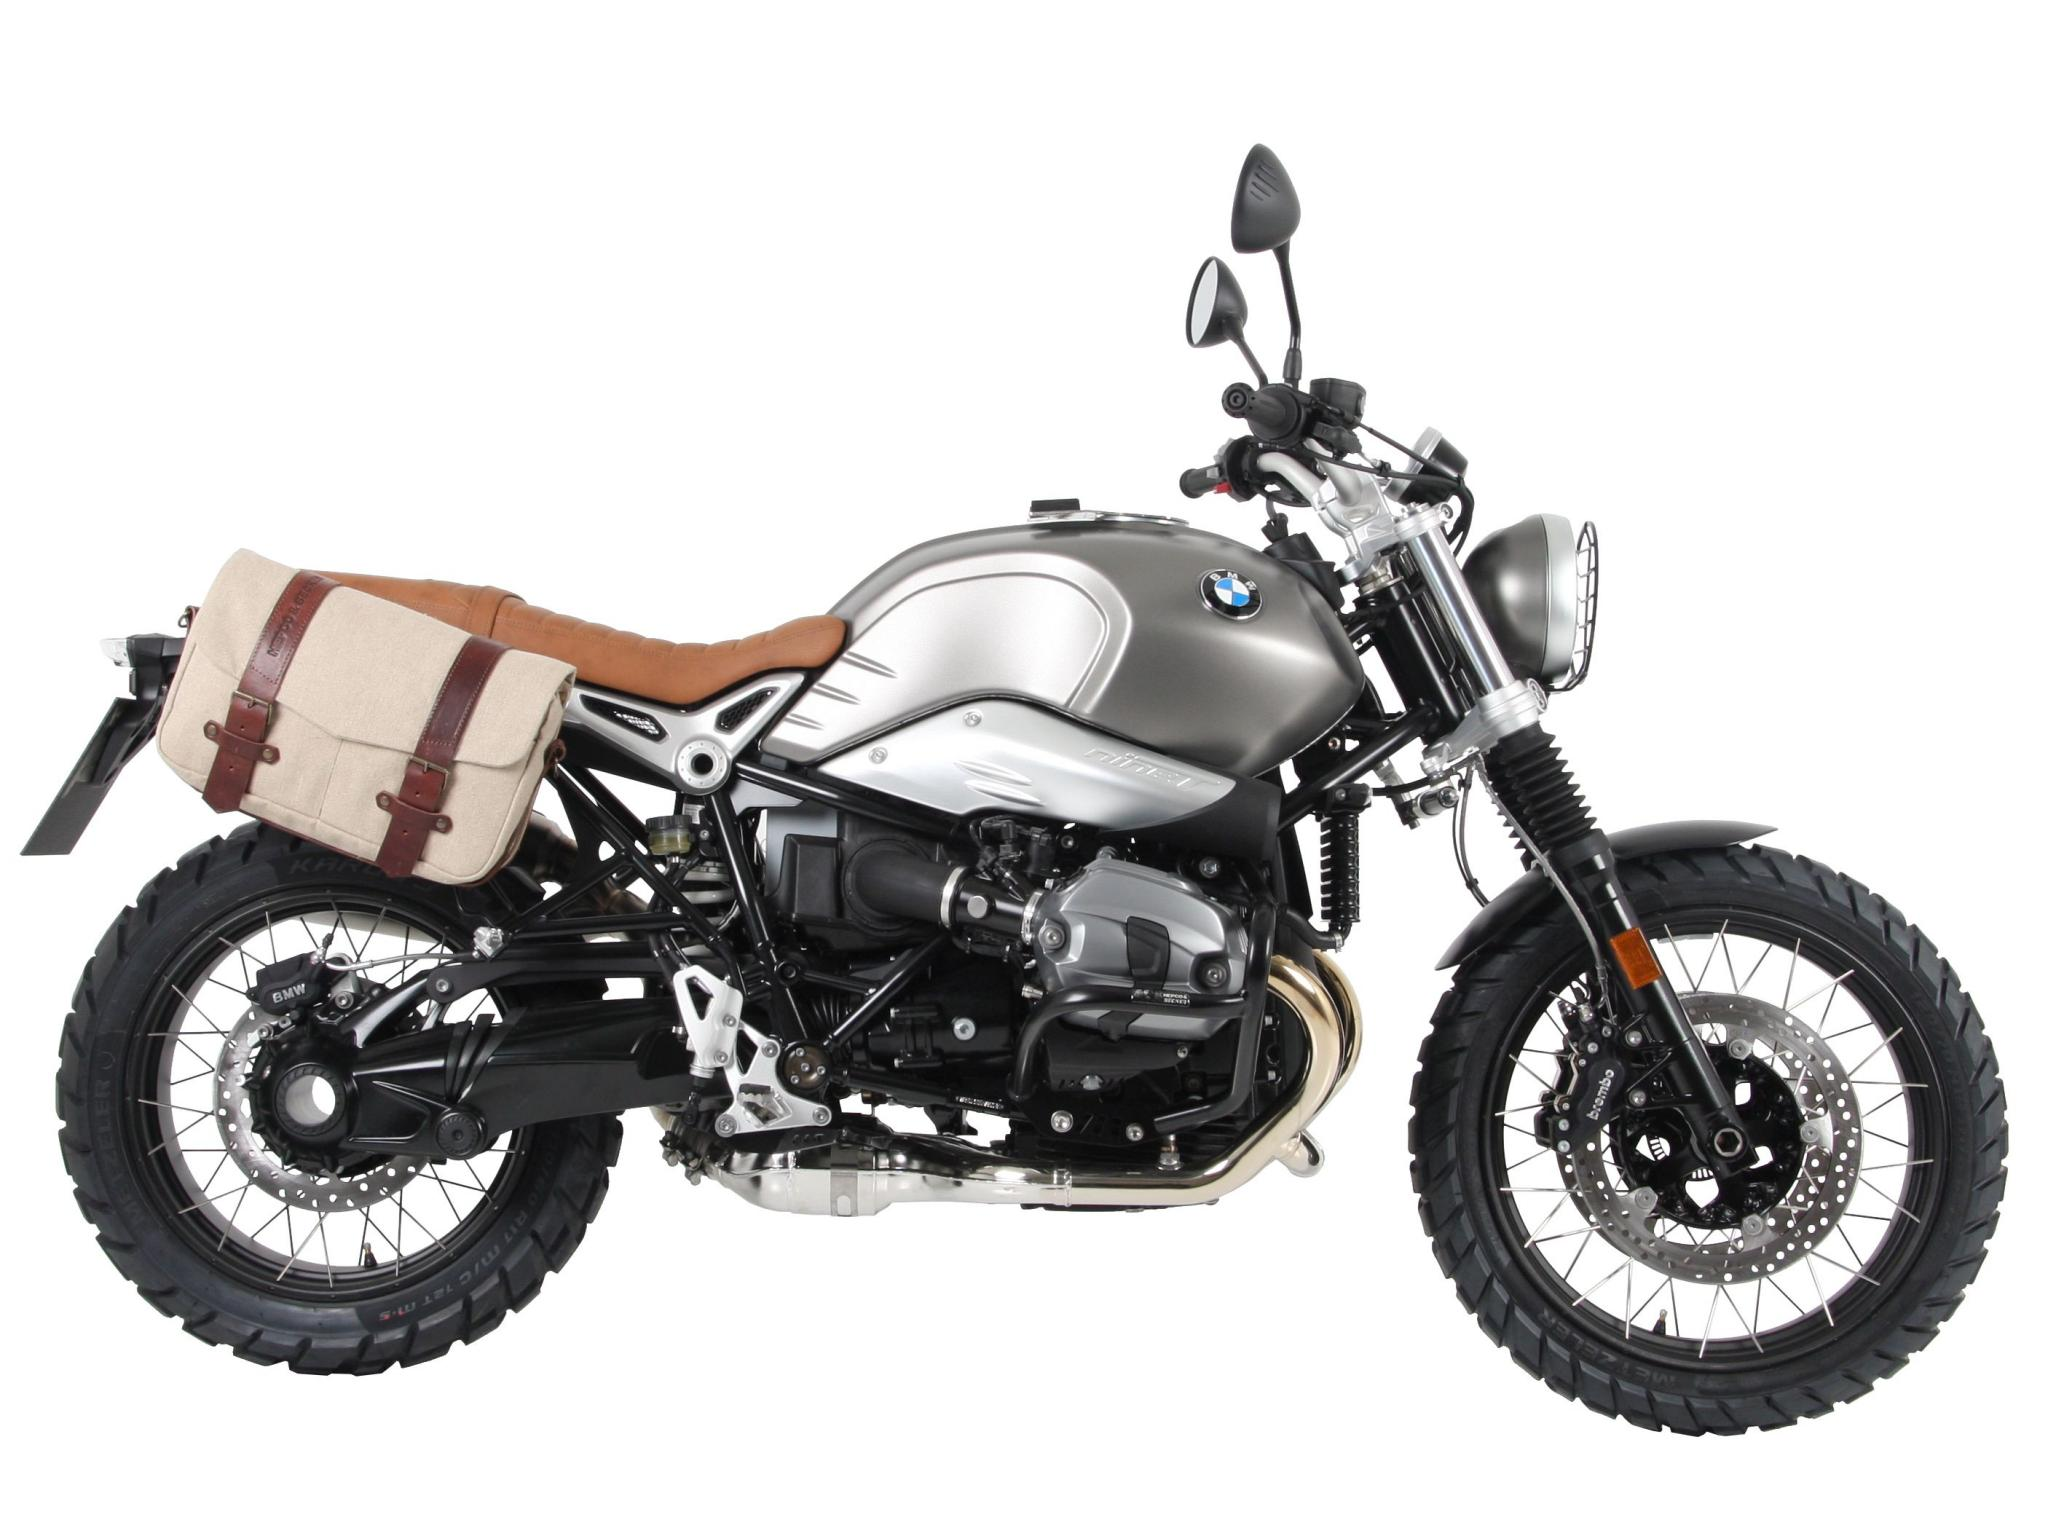 bmw r ninet scrambler zubeh r motorrad fotos motorrad bilder. Black Bedroom Furniture Sets. Home Design Ideas